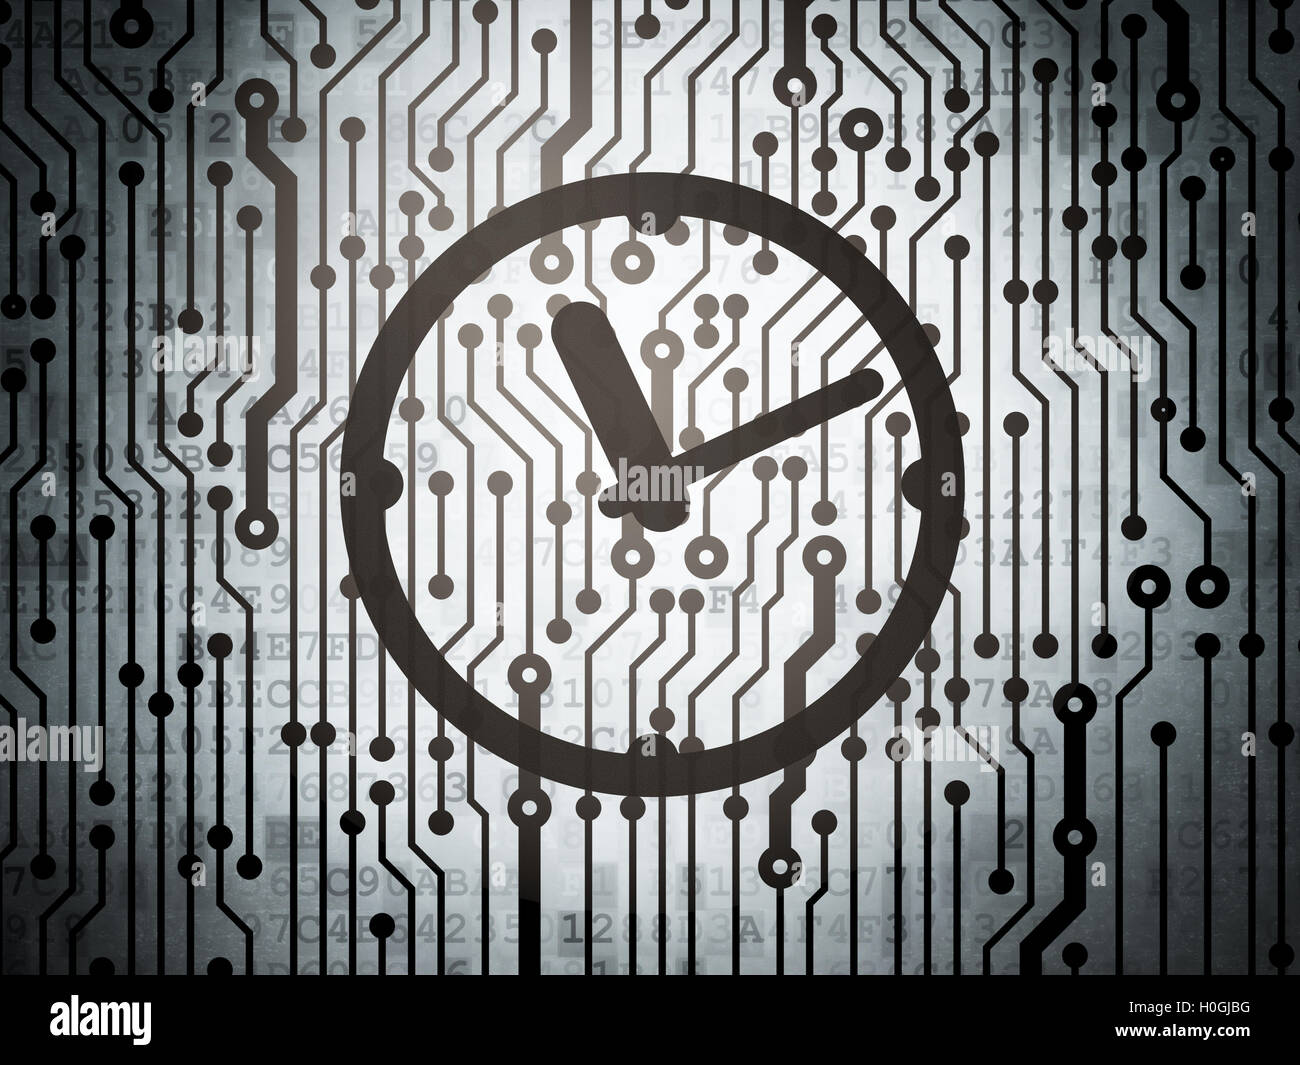 Computer Circuit Board Clock Stock Photos Wall Time Concept With Image